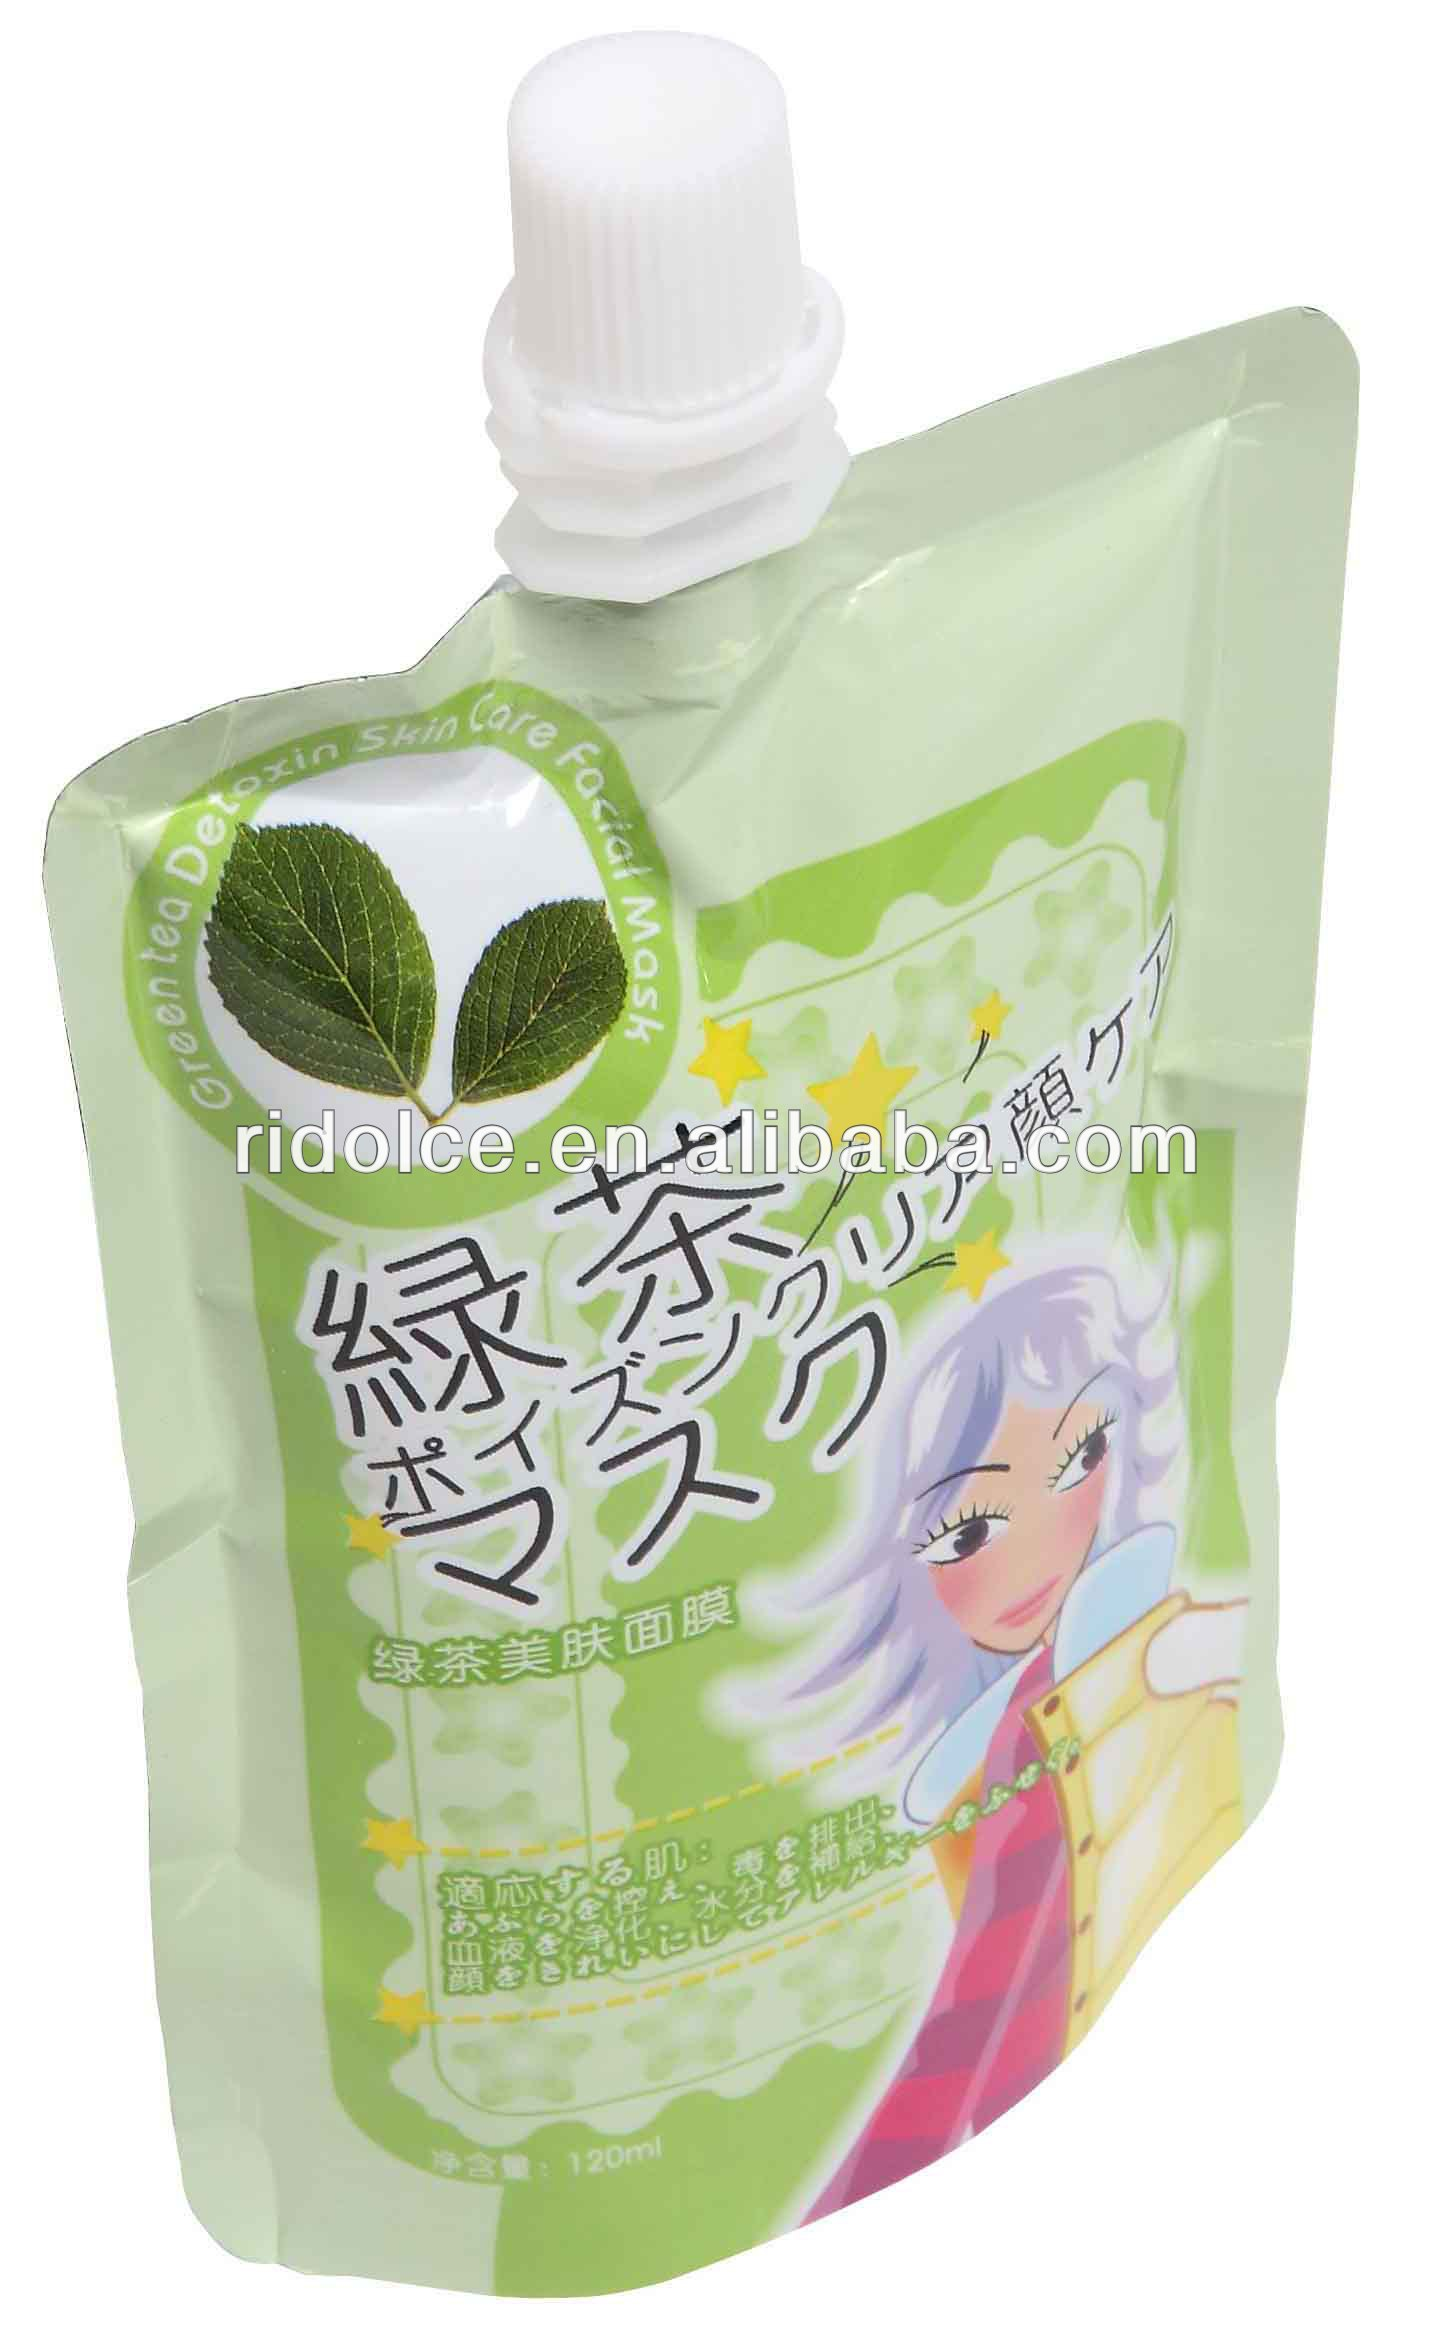 Facial Mask Green Tea Detoxin Skin Care